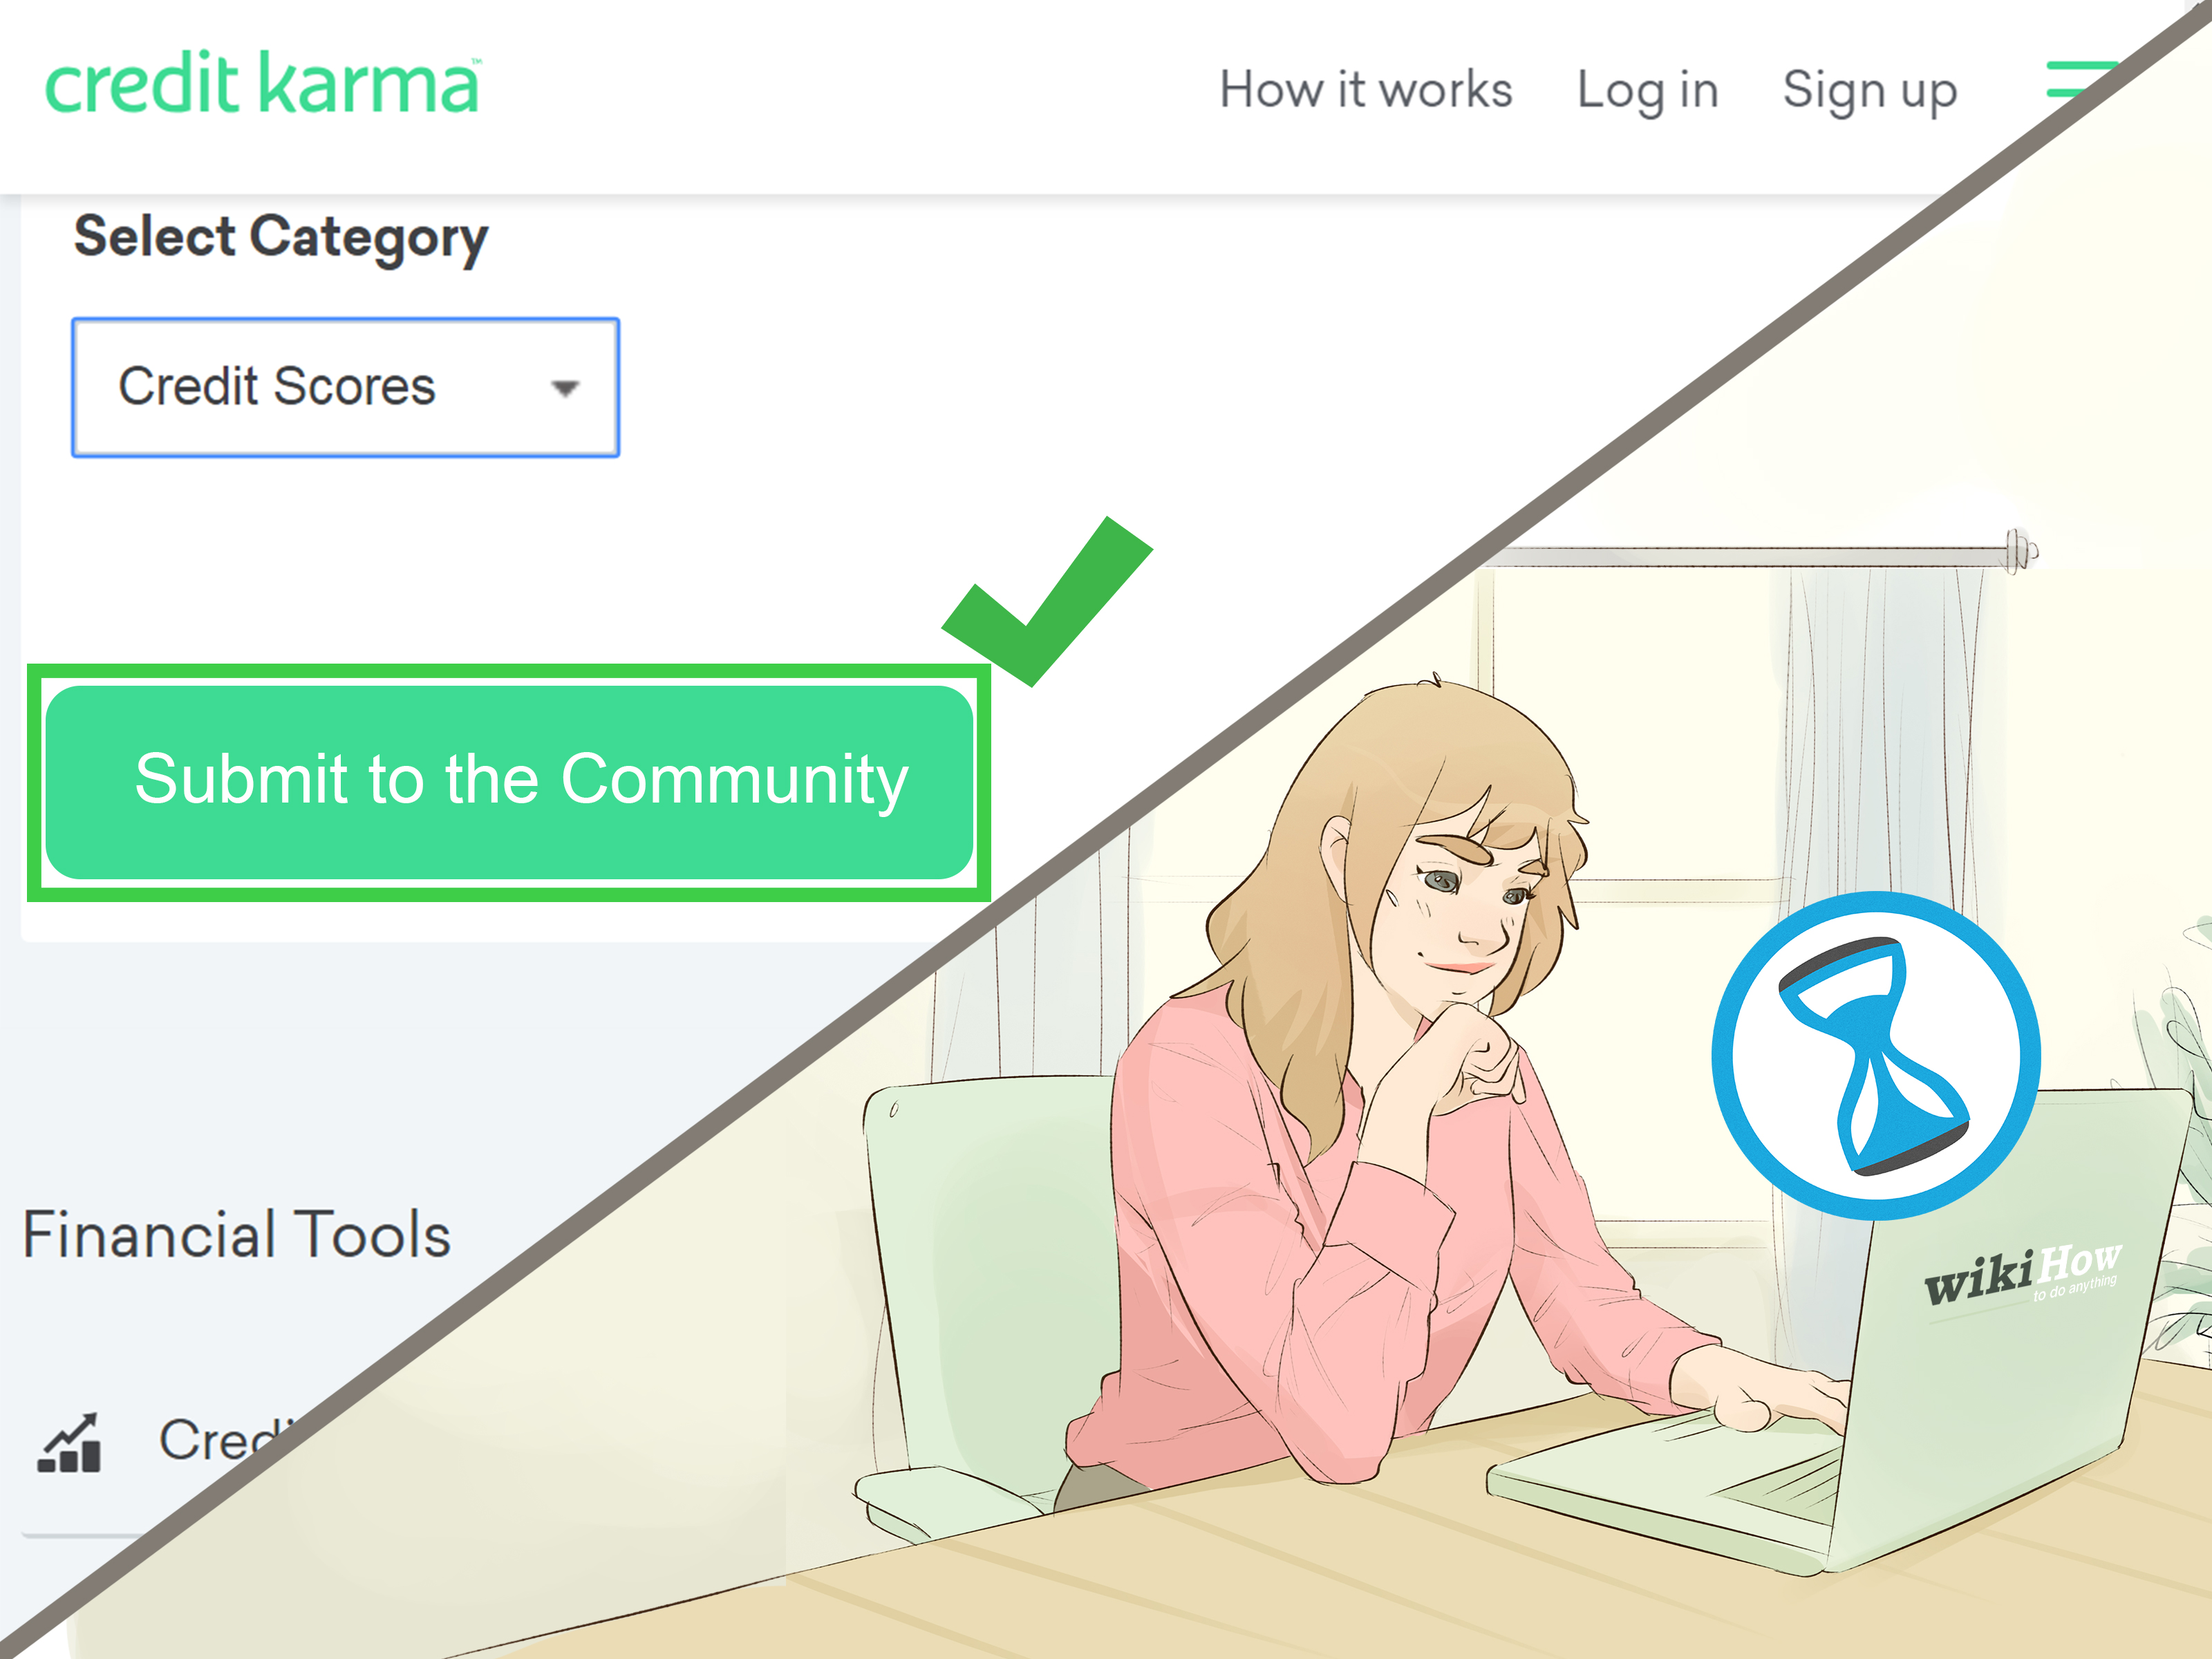 Credit Karma 3 Ways To Contact Credit Karma Wikihow